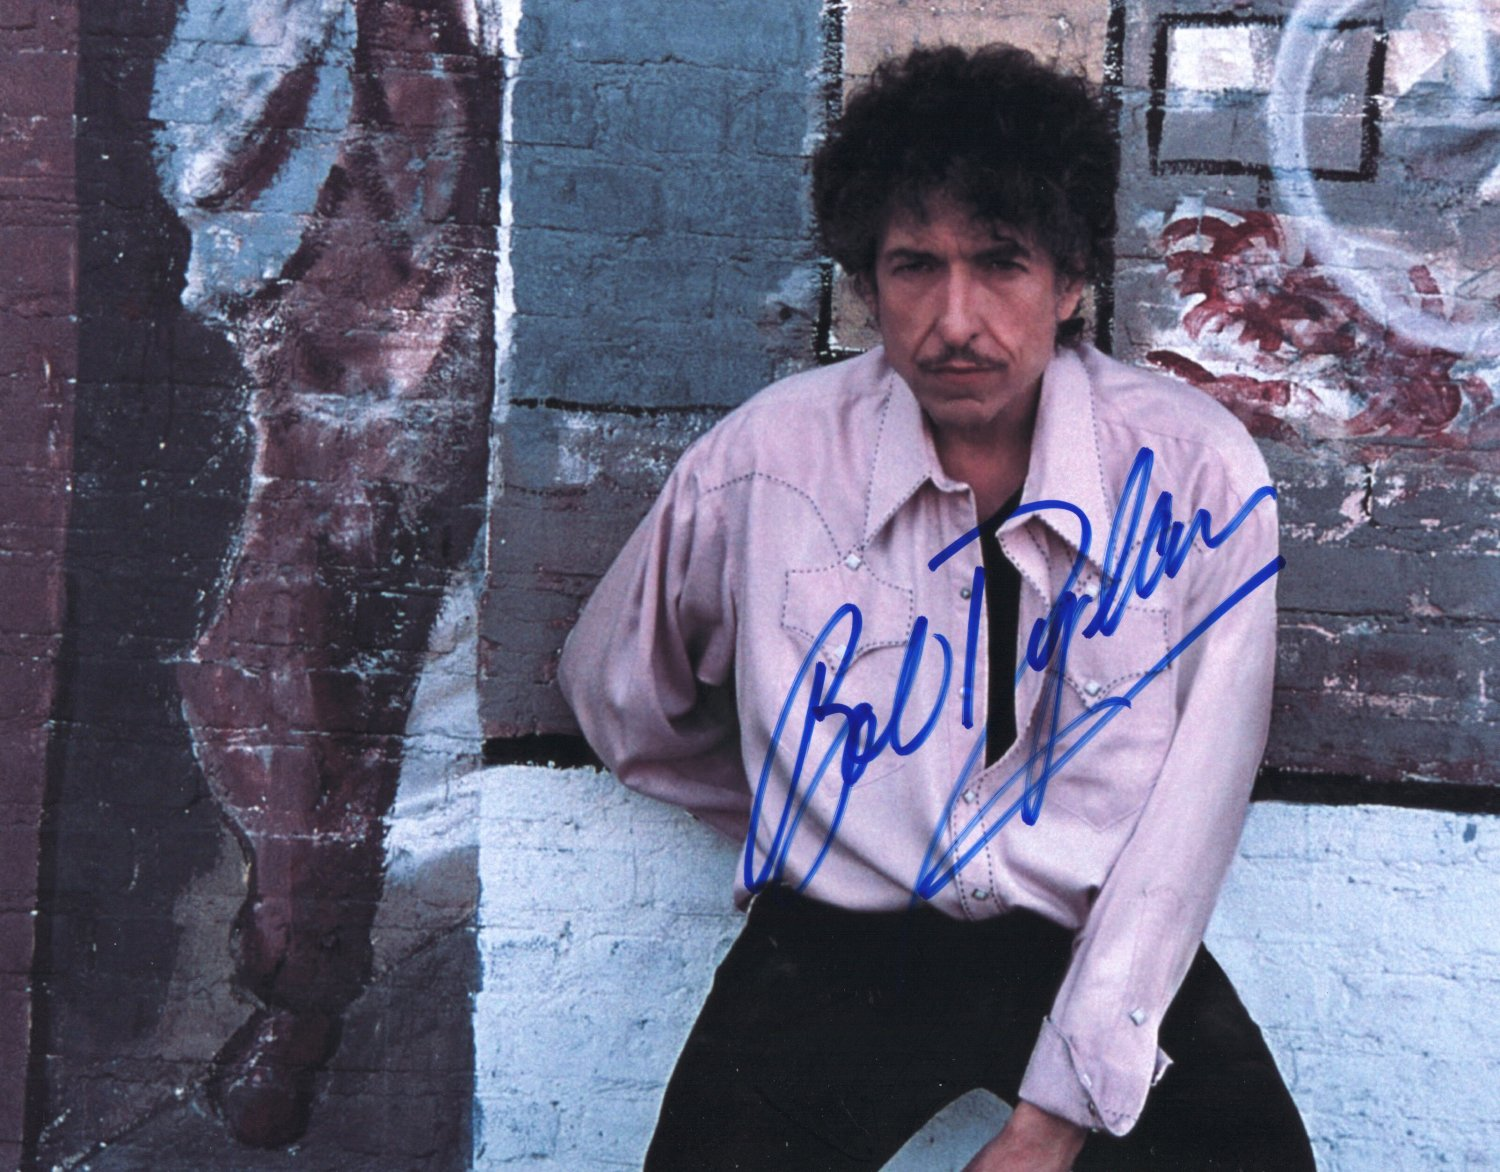 BOB DYLAN - LEGENDARY SINGER/SONGWRITER - PERSONALLY HAND SIGNED AUTOGRAPHED PHOTO WITH COA